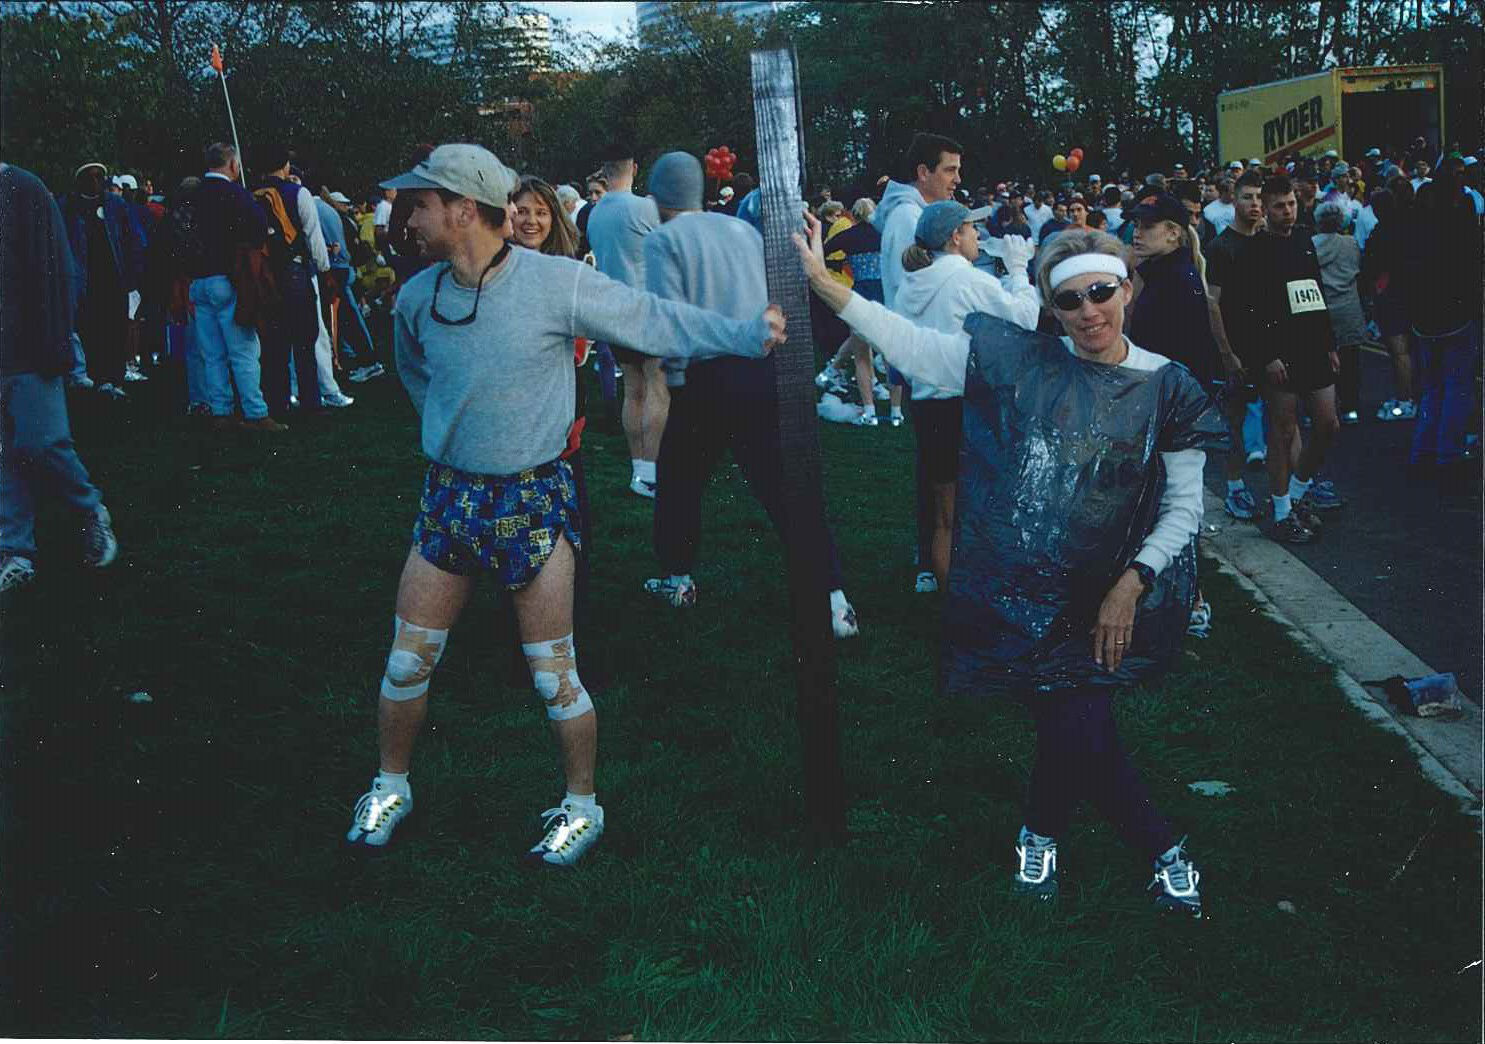 Runners stretching at the start of the race. Year not known. (Courtesy Marine Corps Marathon)